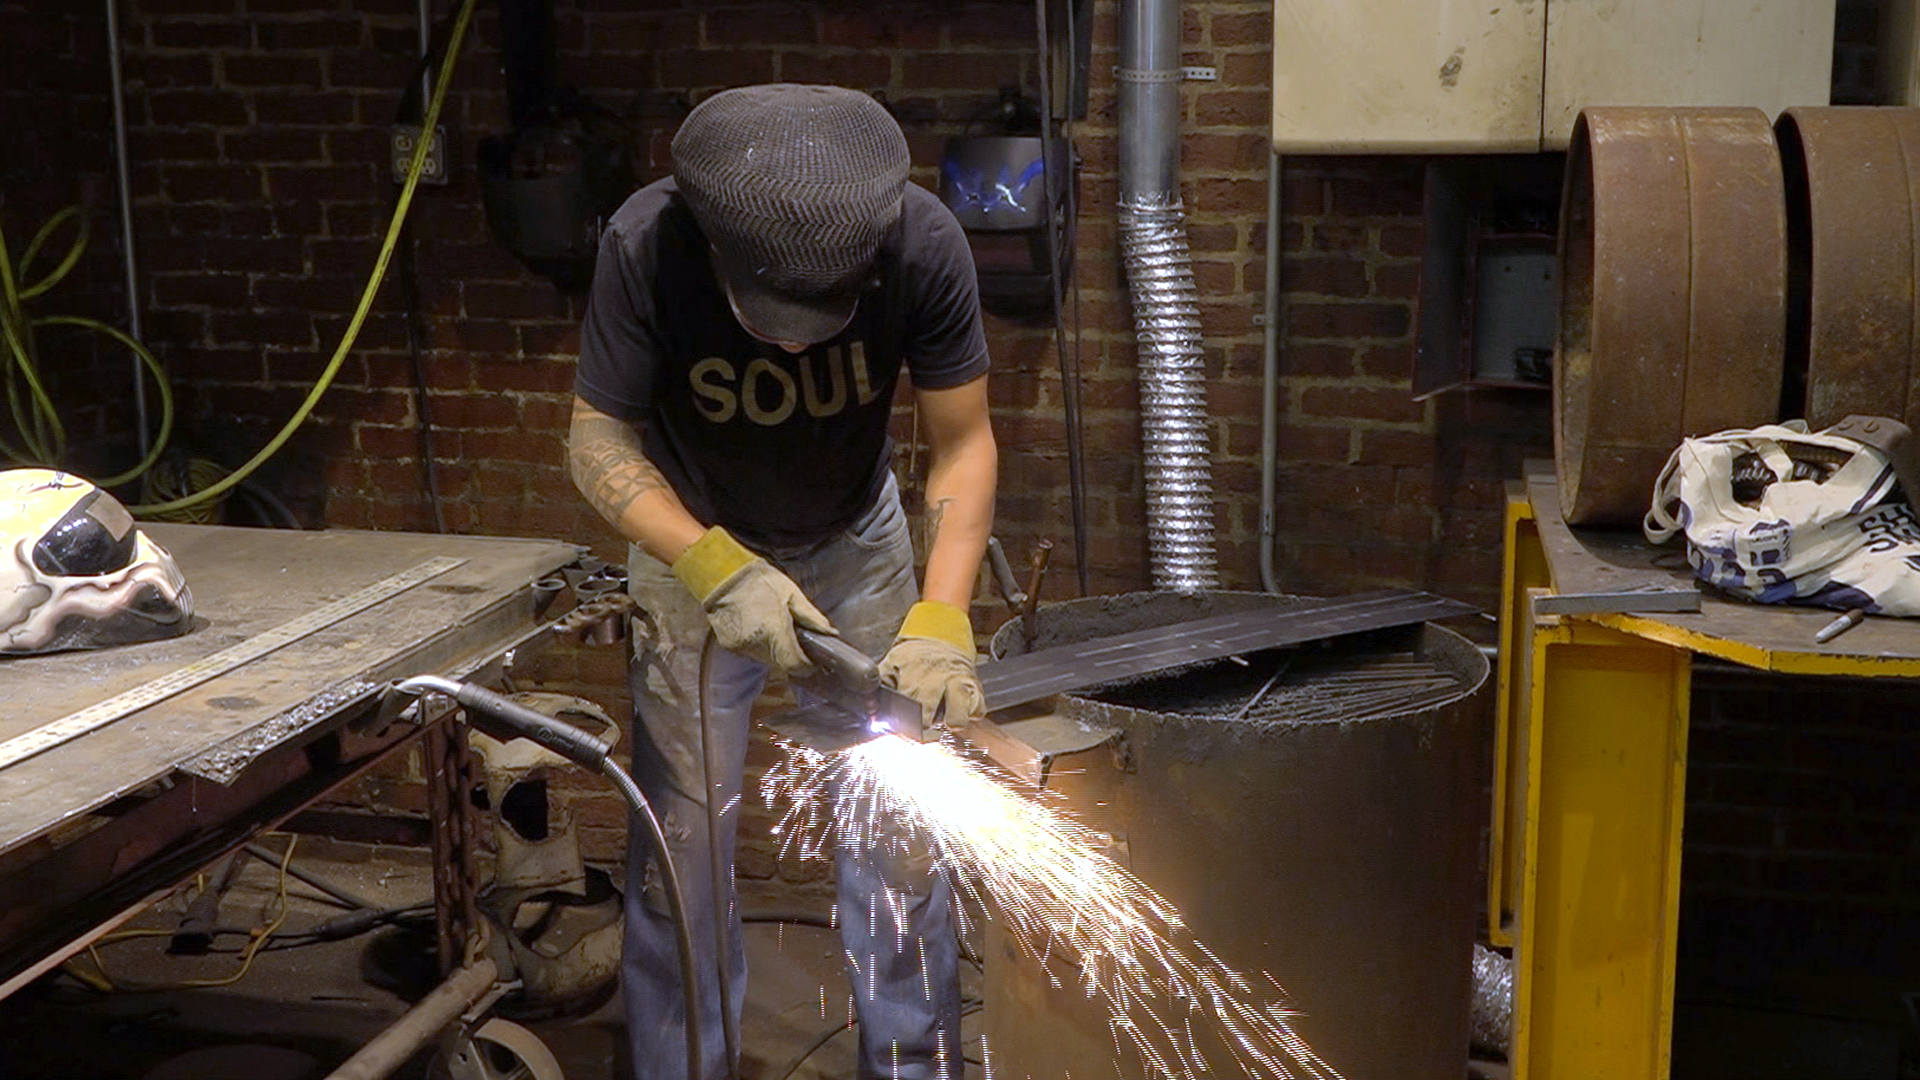 Visit metal sculptor & contractor Kamil Peters at Diesel Works in Holyoke, MA, where he brings trade training and career opportunities to people of color.